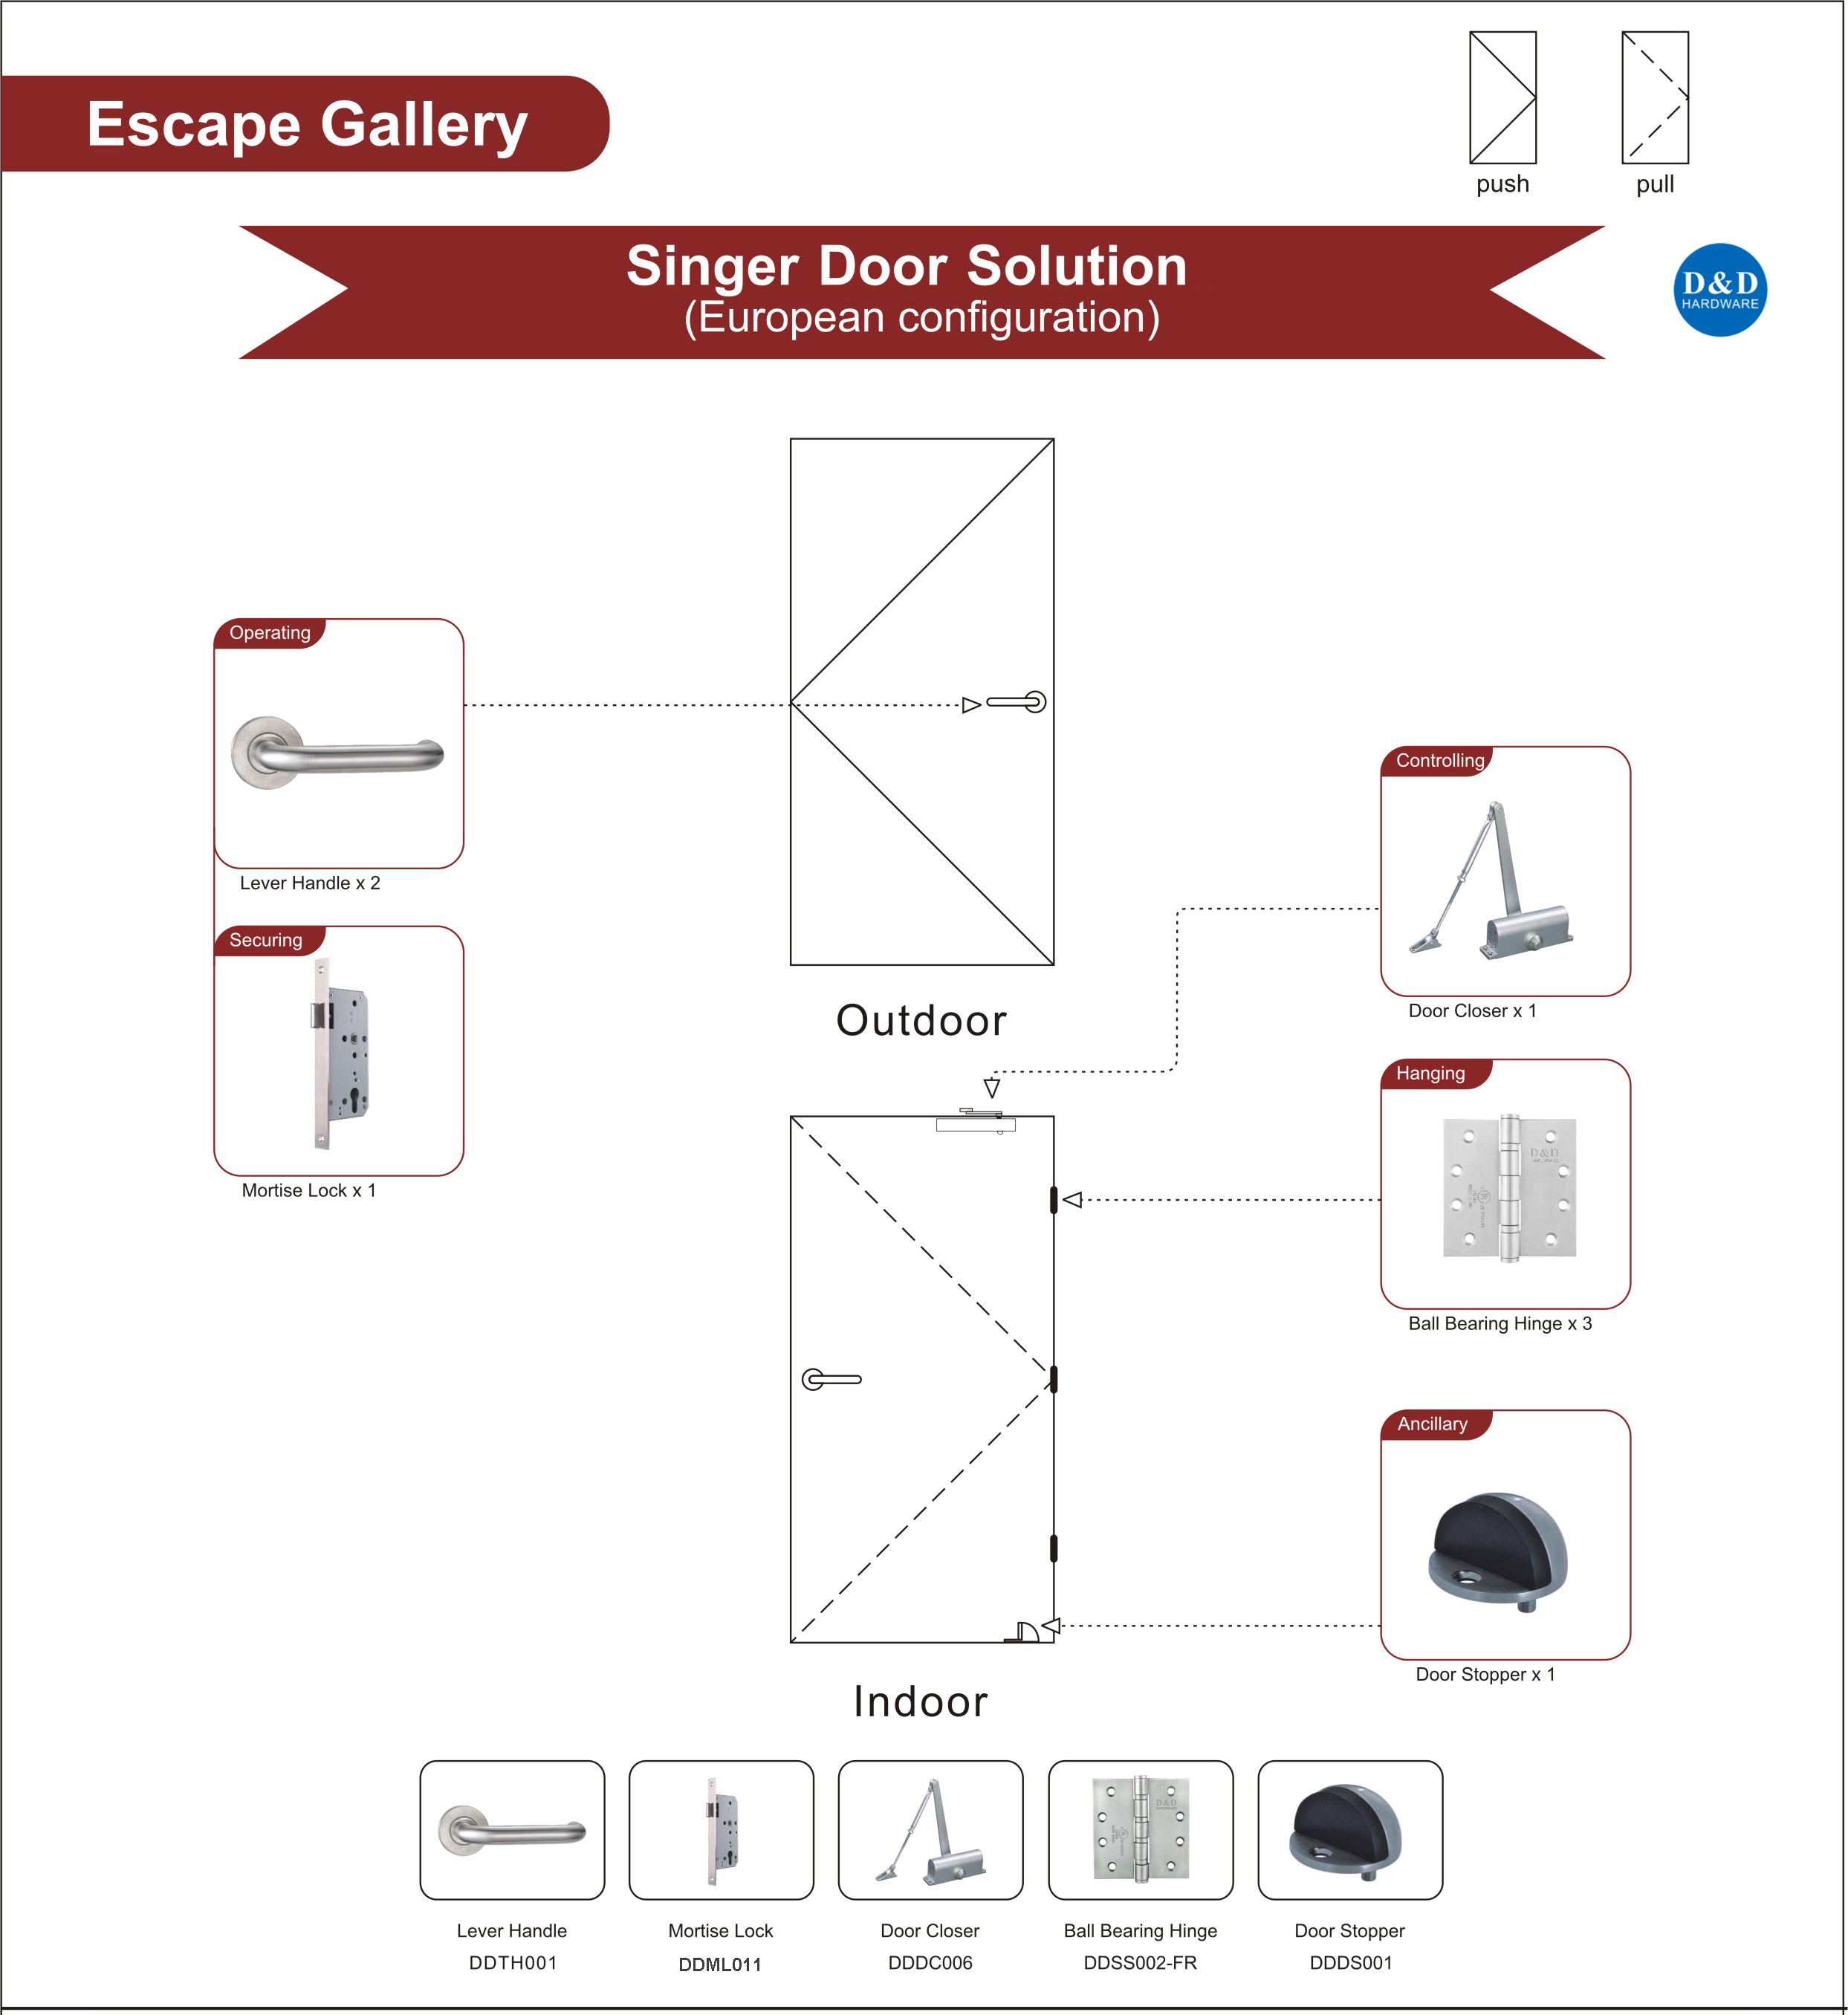 Steel Door Ironmongery for Escape Gallery Single Door